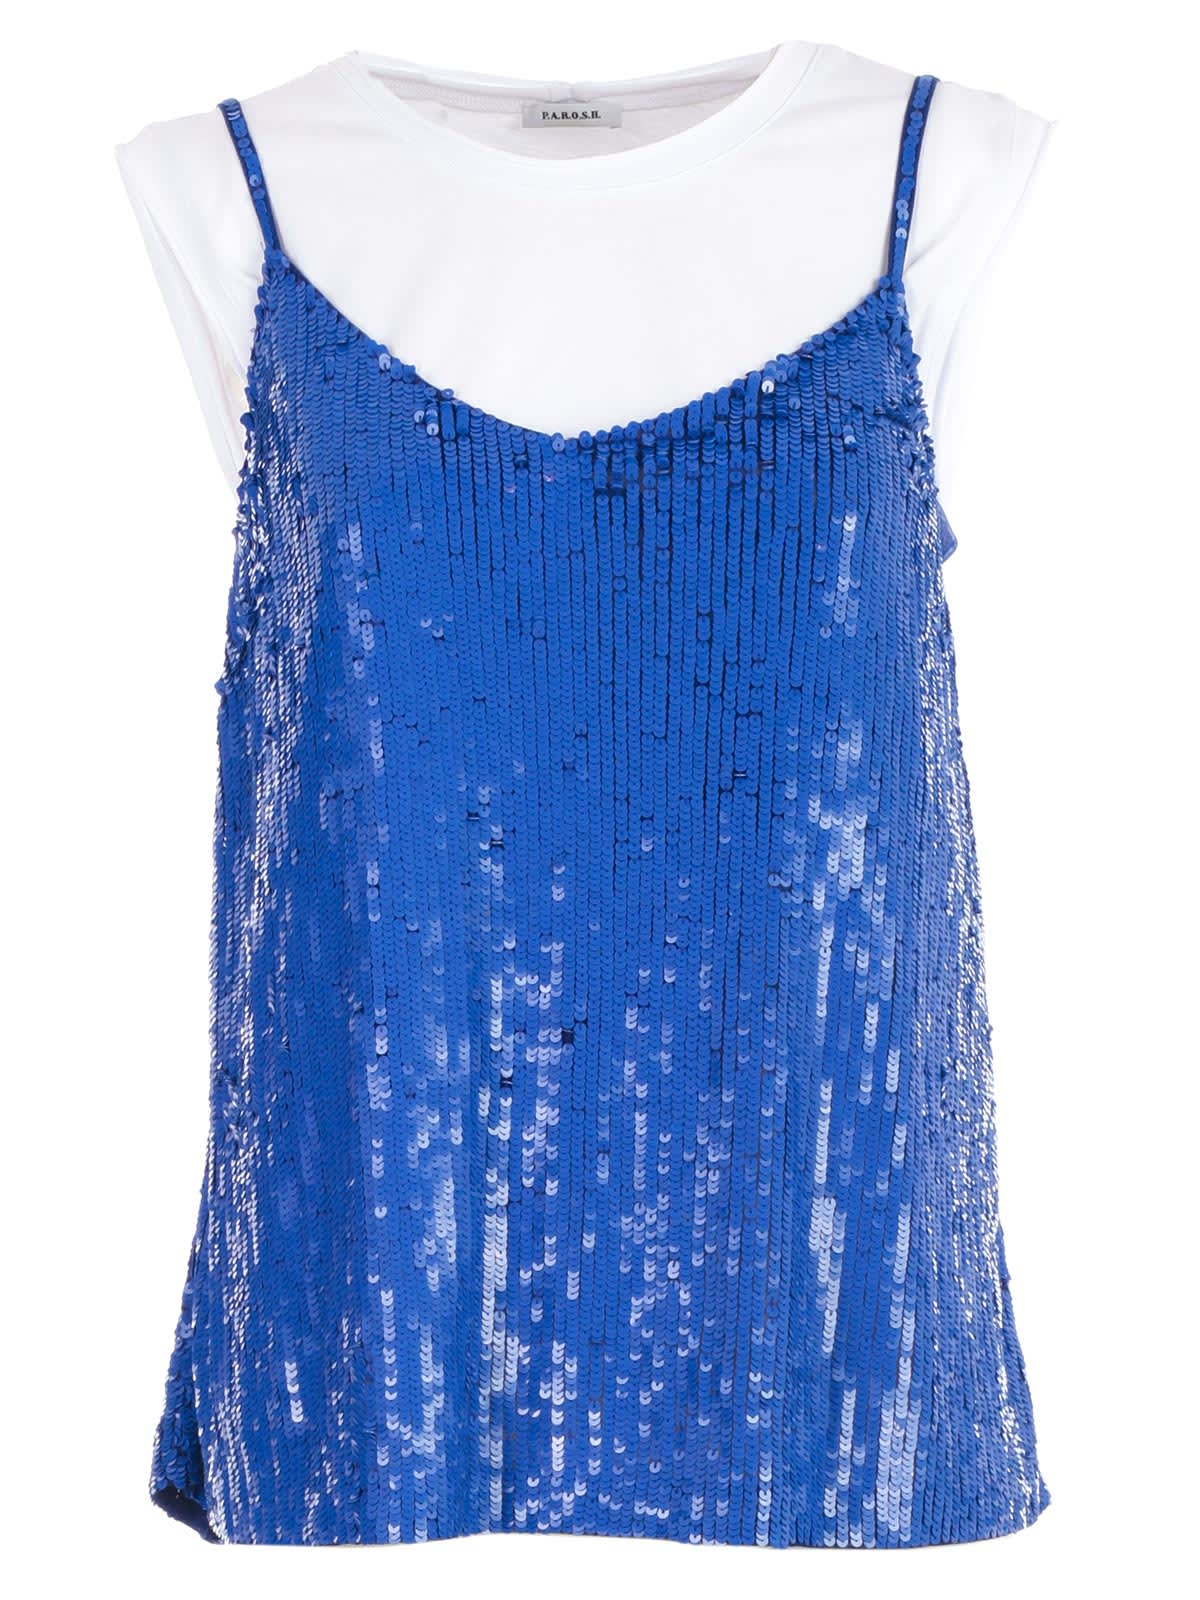 Sequined Top from Parosh: Blue Sequined Top with round neck, t-shirt inside design, cap sleeves, spaghetti strap straight hem and sequin embroidery design